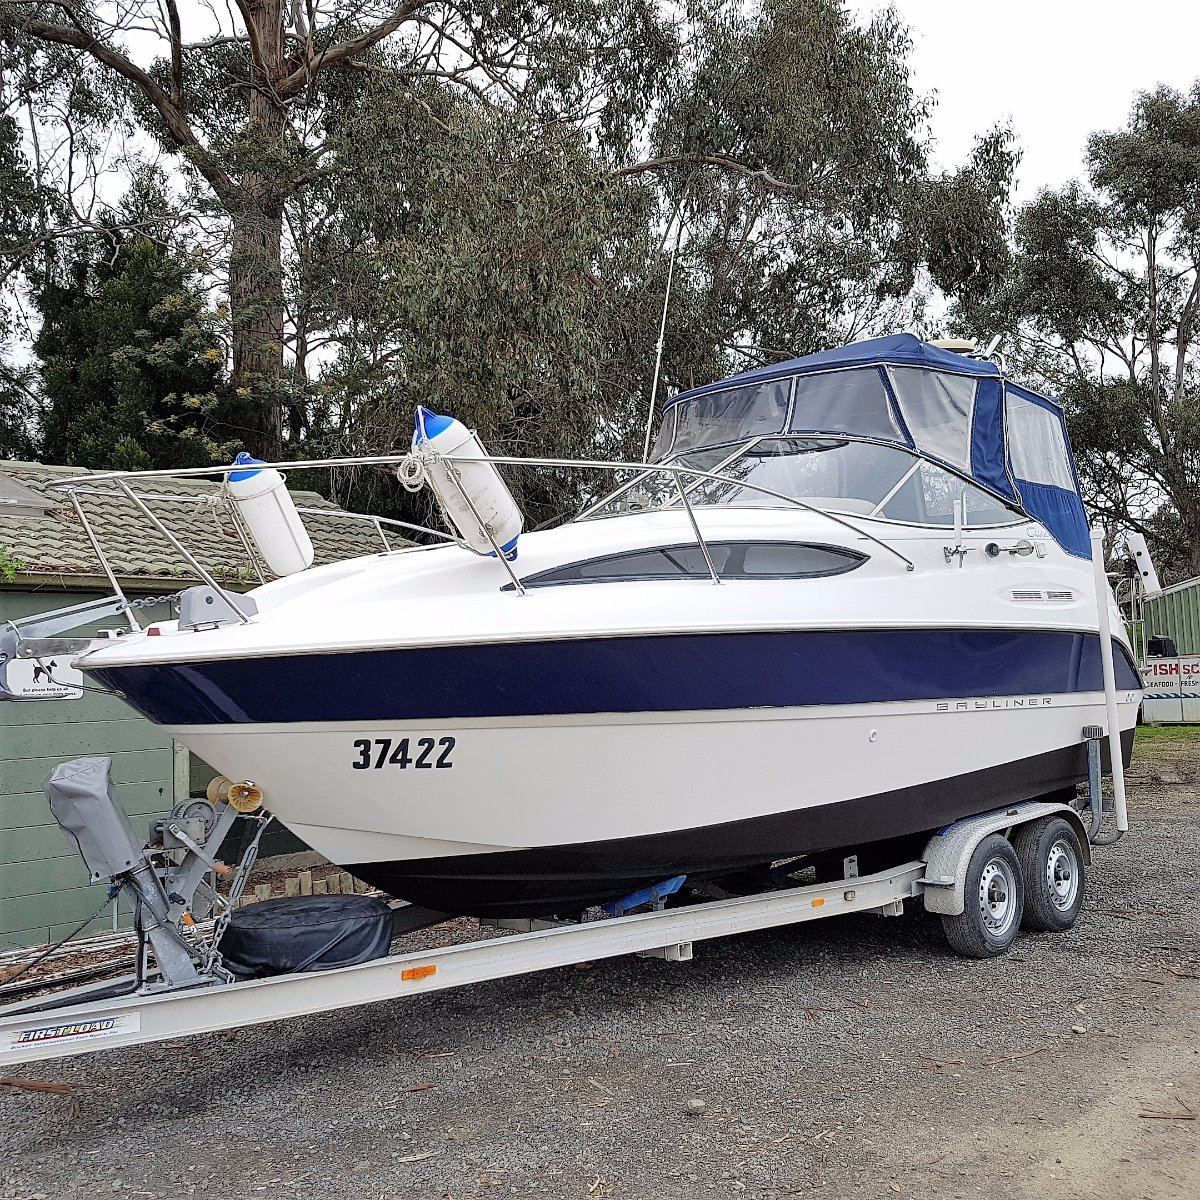 Bayliner Ciera 2455 Bayliner 2455 Ciera on registered tandem trailer Boat Brokers of Tasmania